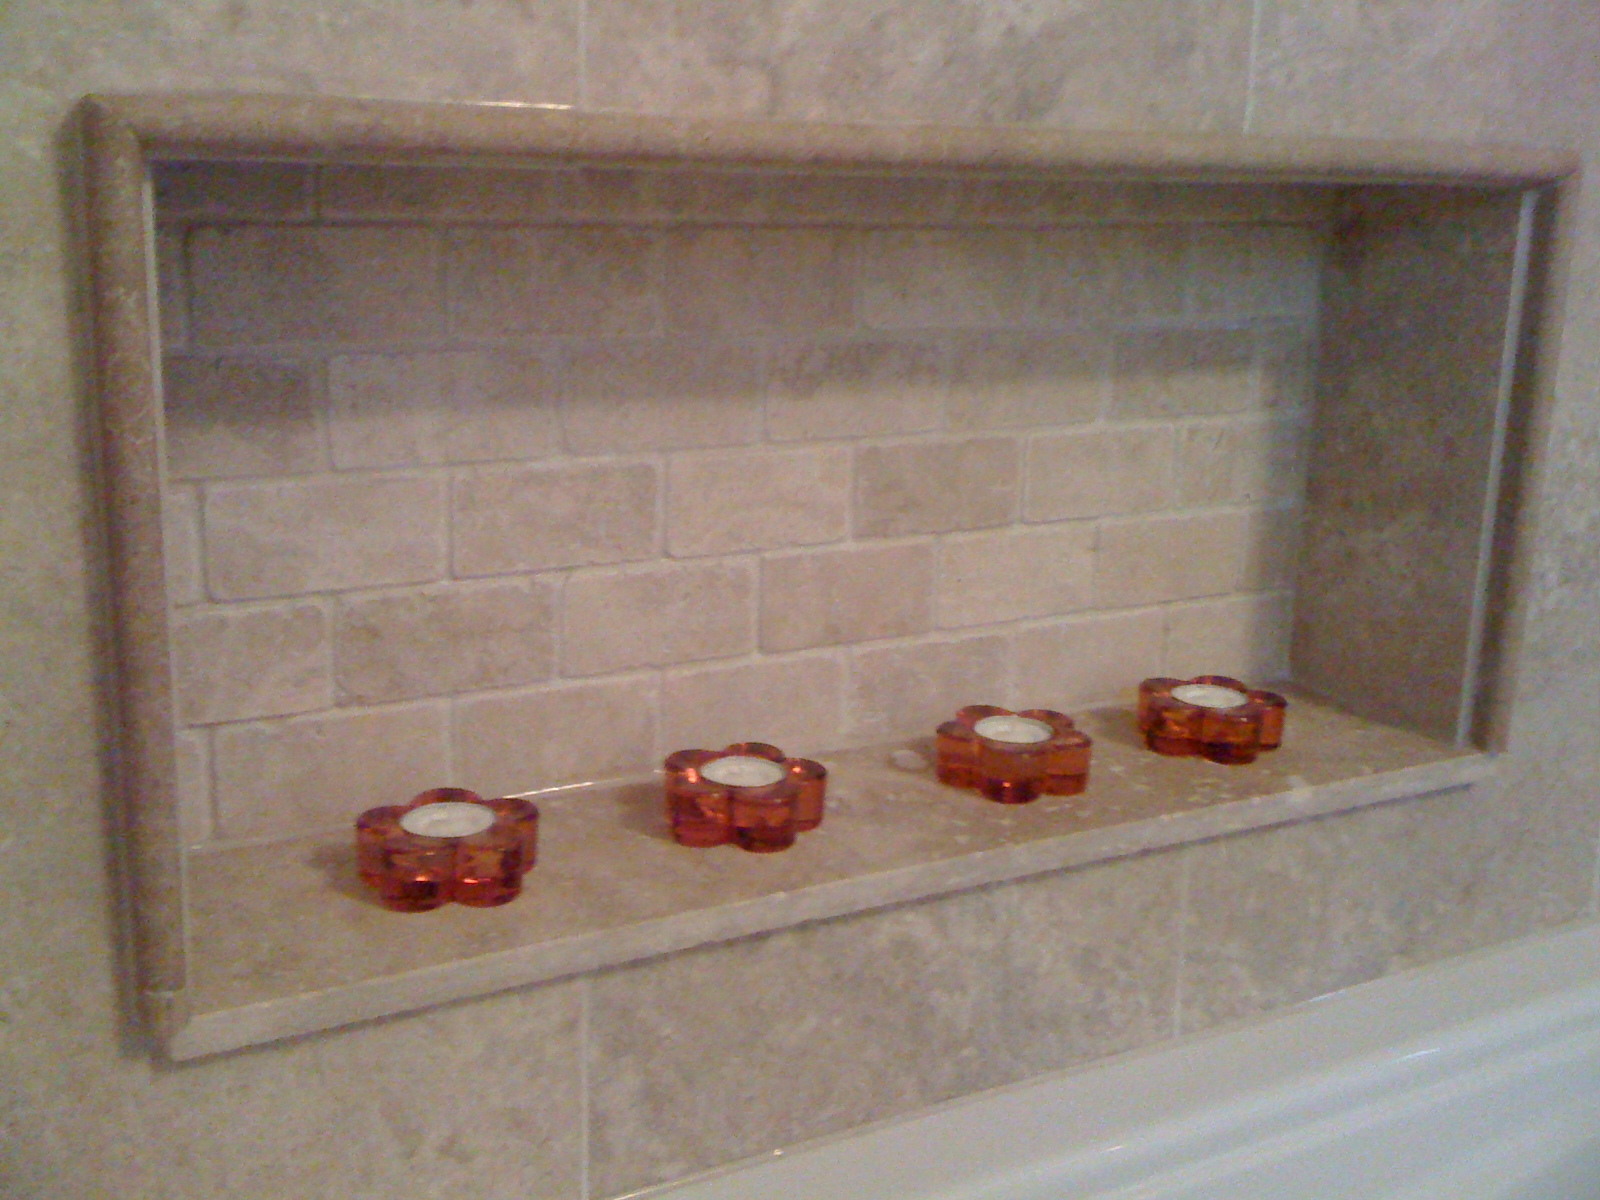 Bathtub inlet tiled in travertine with back splash